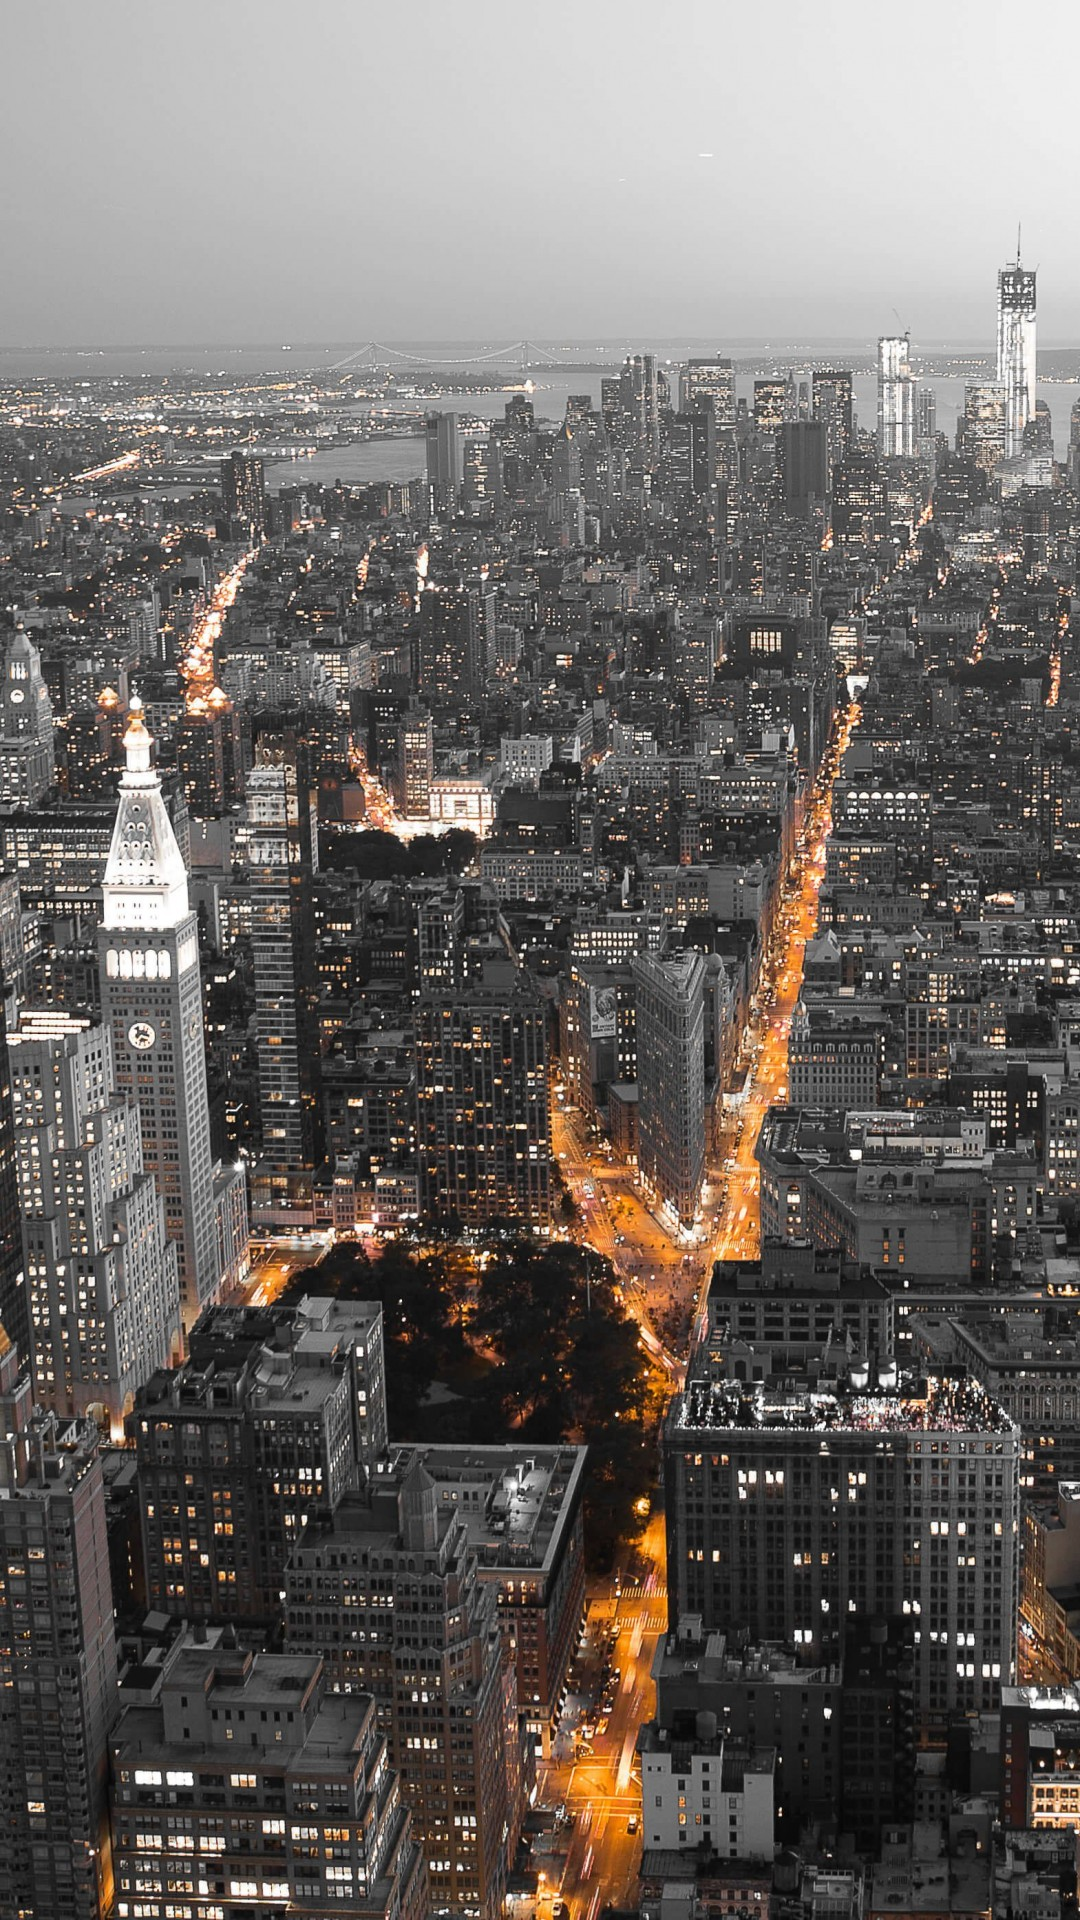 New York City by Night Wallpaper for SONY Xperia Z1